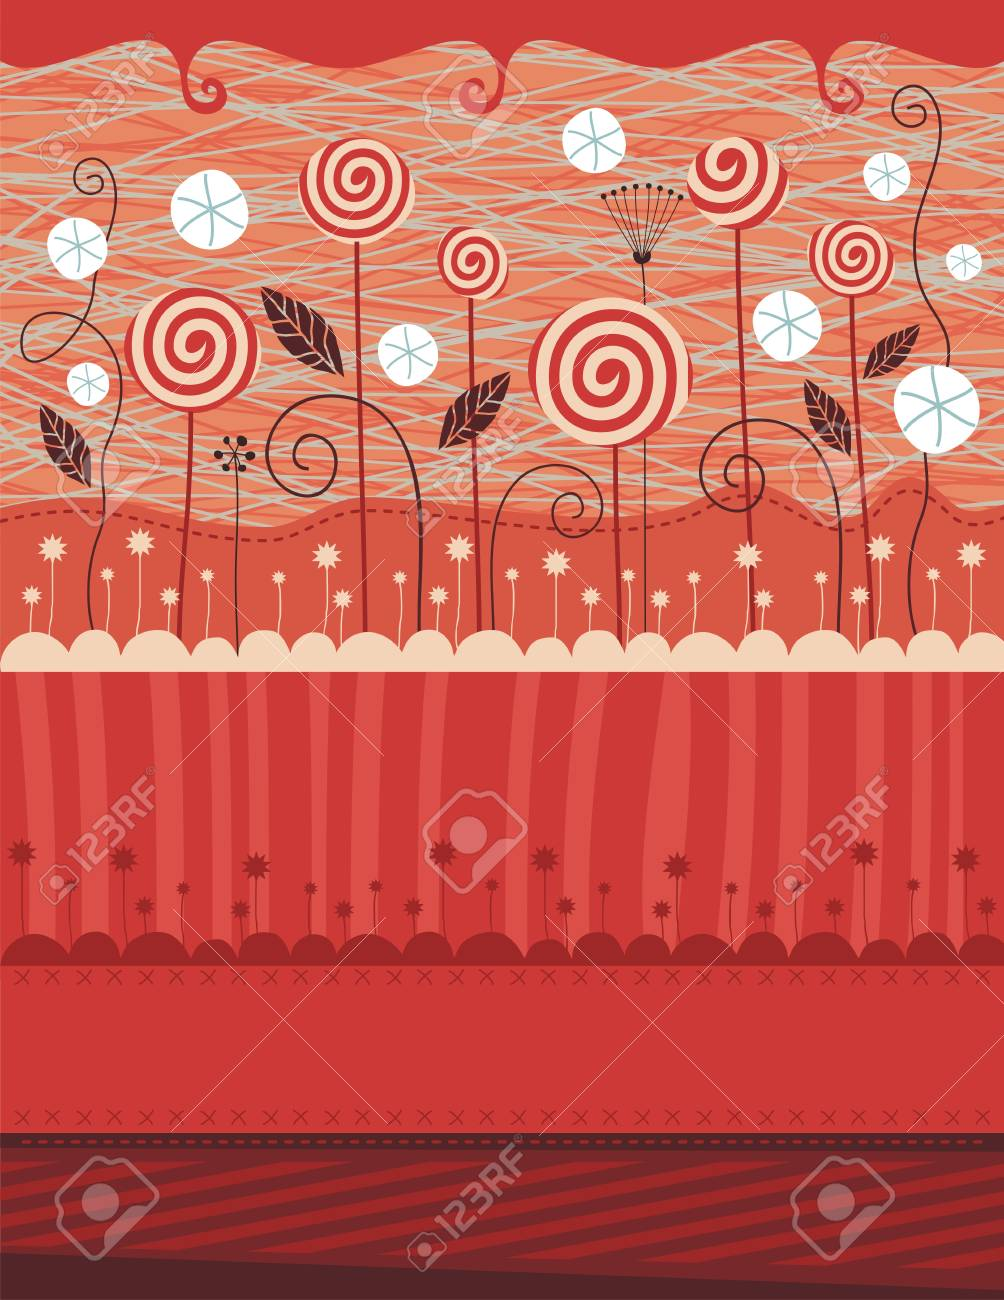 Christmas background with seasonal elements and space for custom text Stock Vector - 15689663